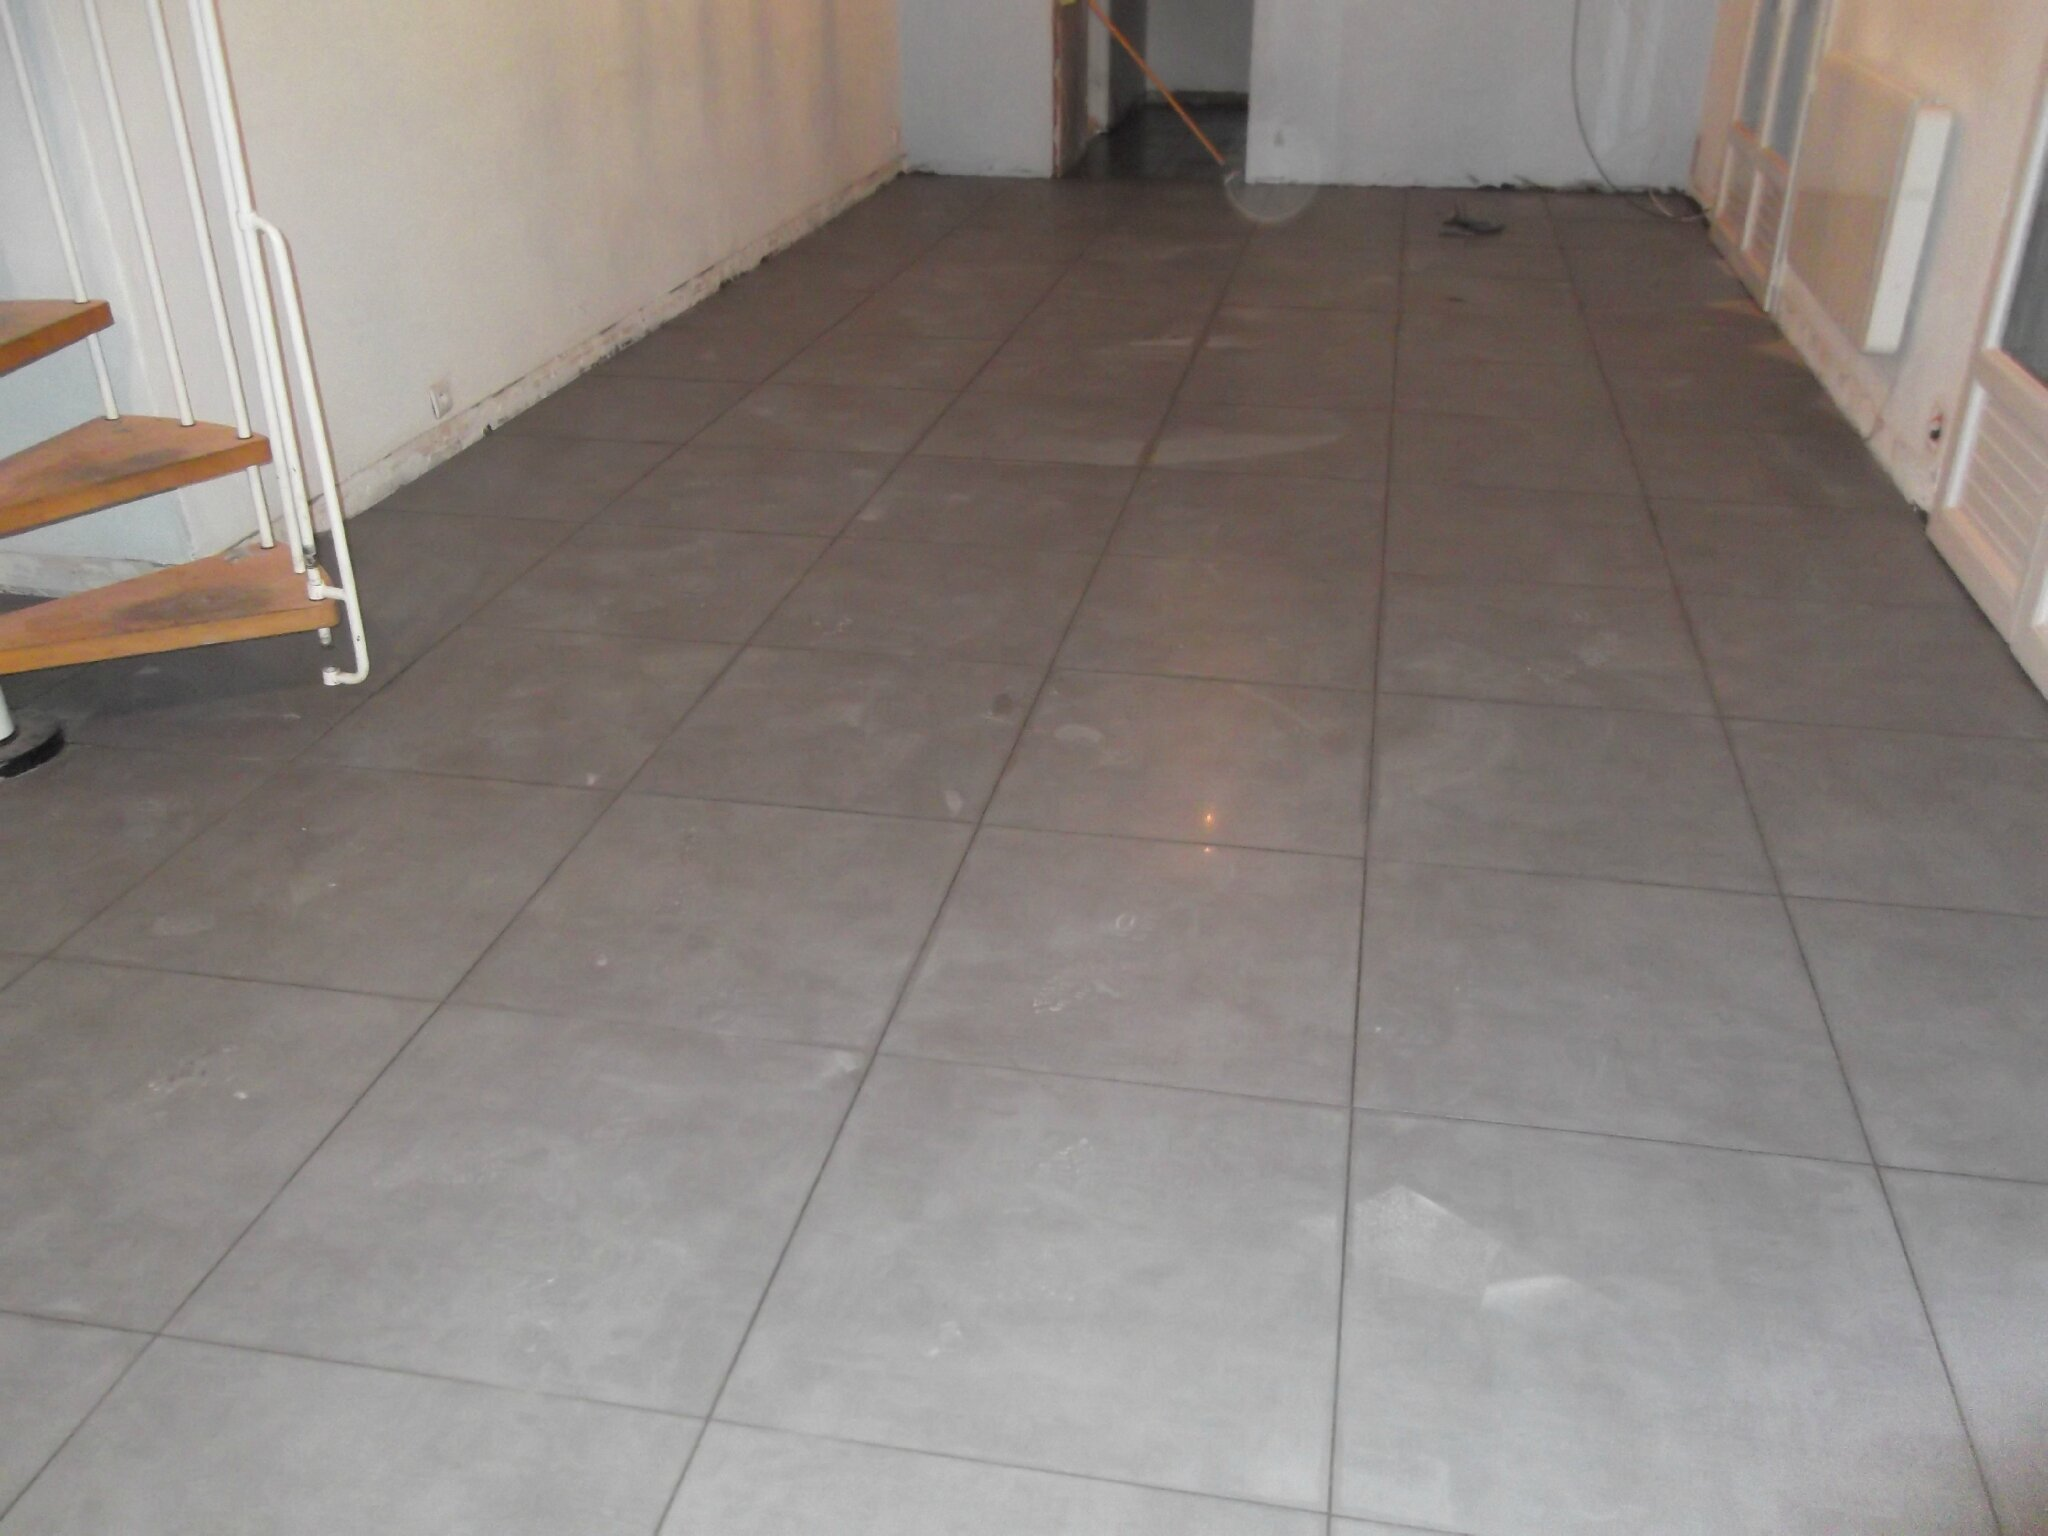 Comment Blanchir Les Joints De Carrelage Blanchir Joint Carrelage Sol Nettoyer Joint Carrelage Sol